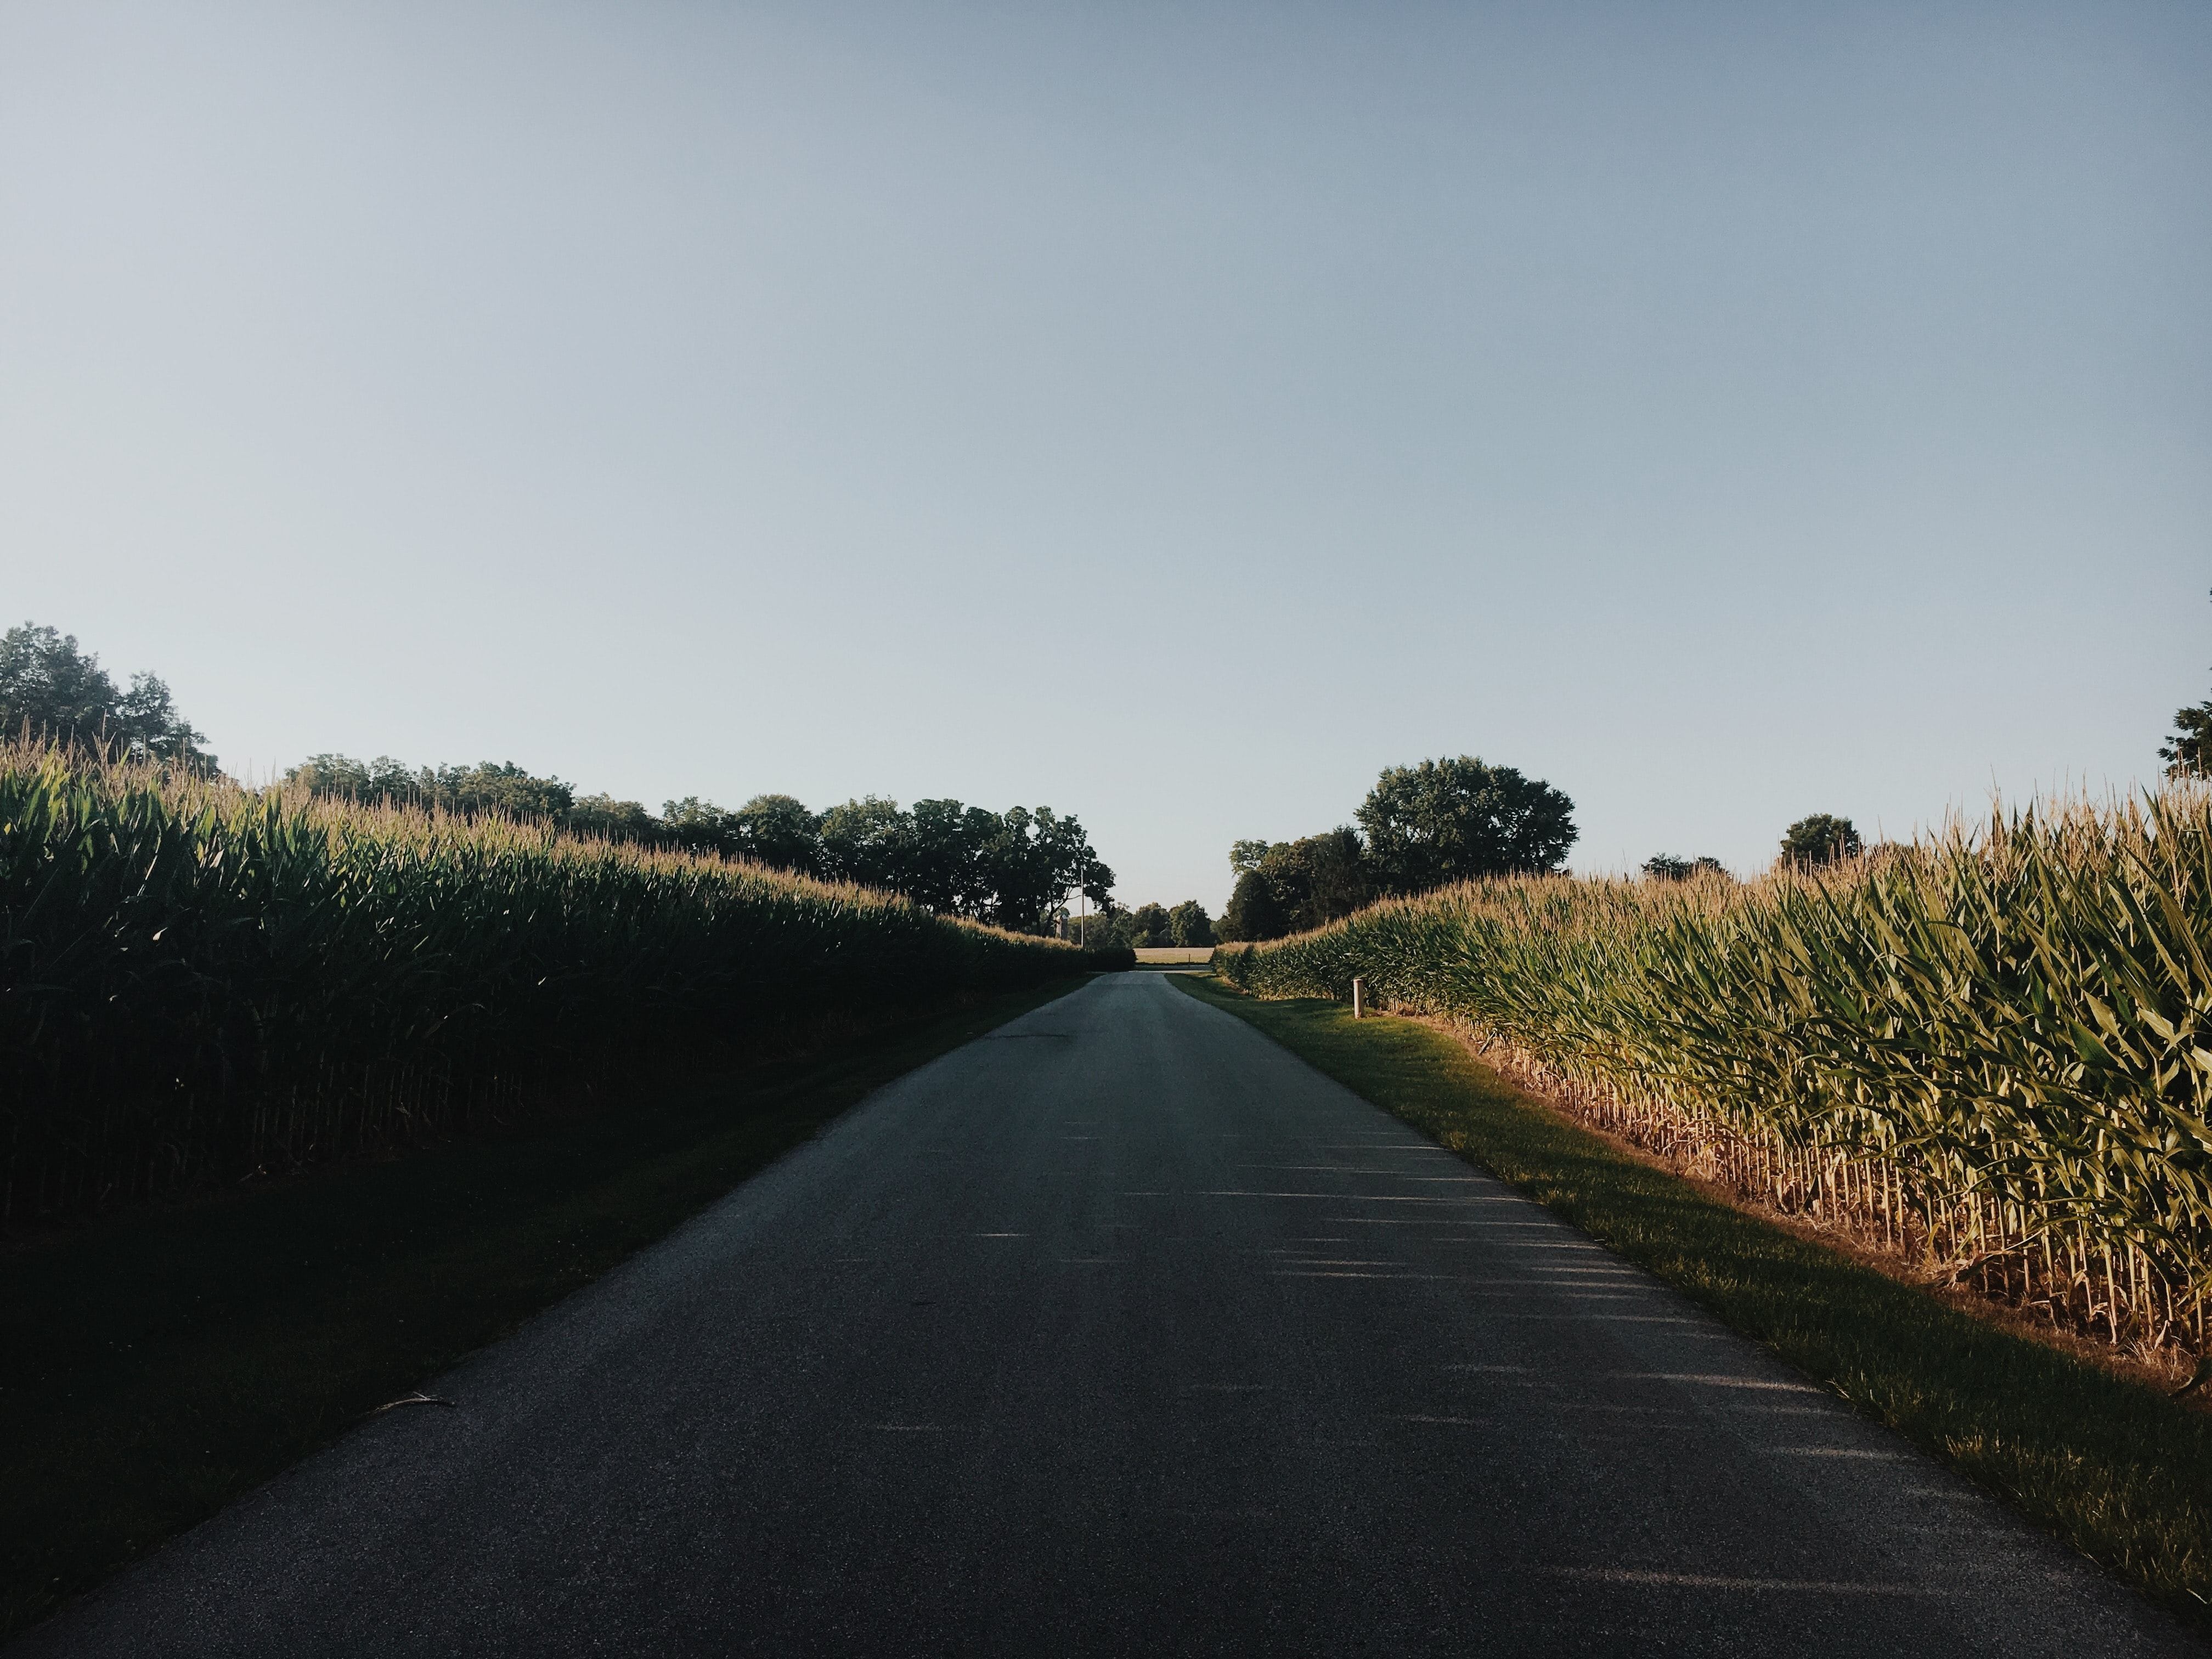 road surrounded by corn plants